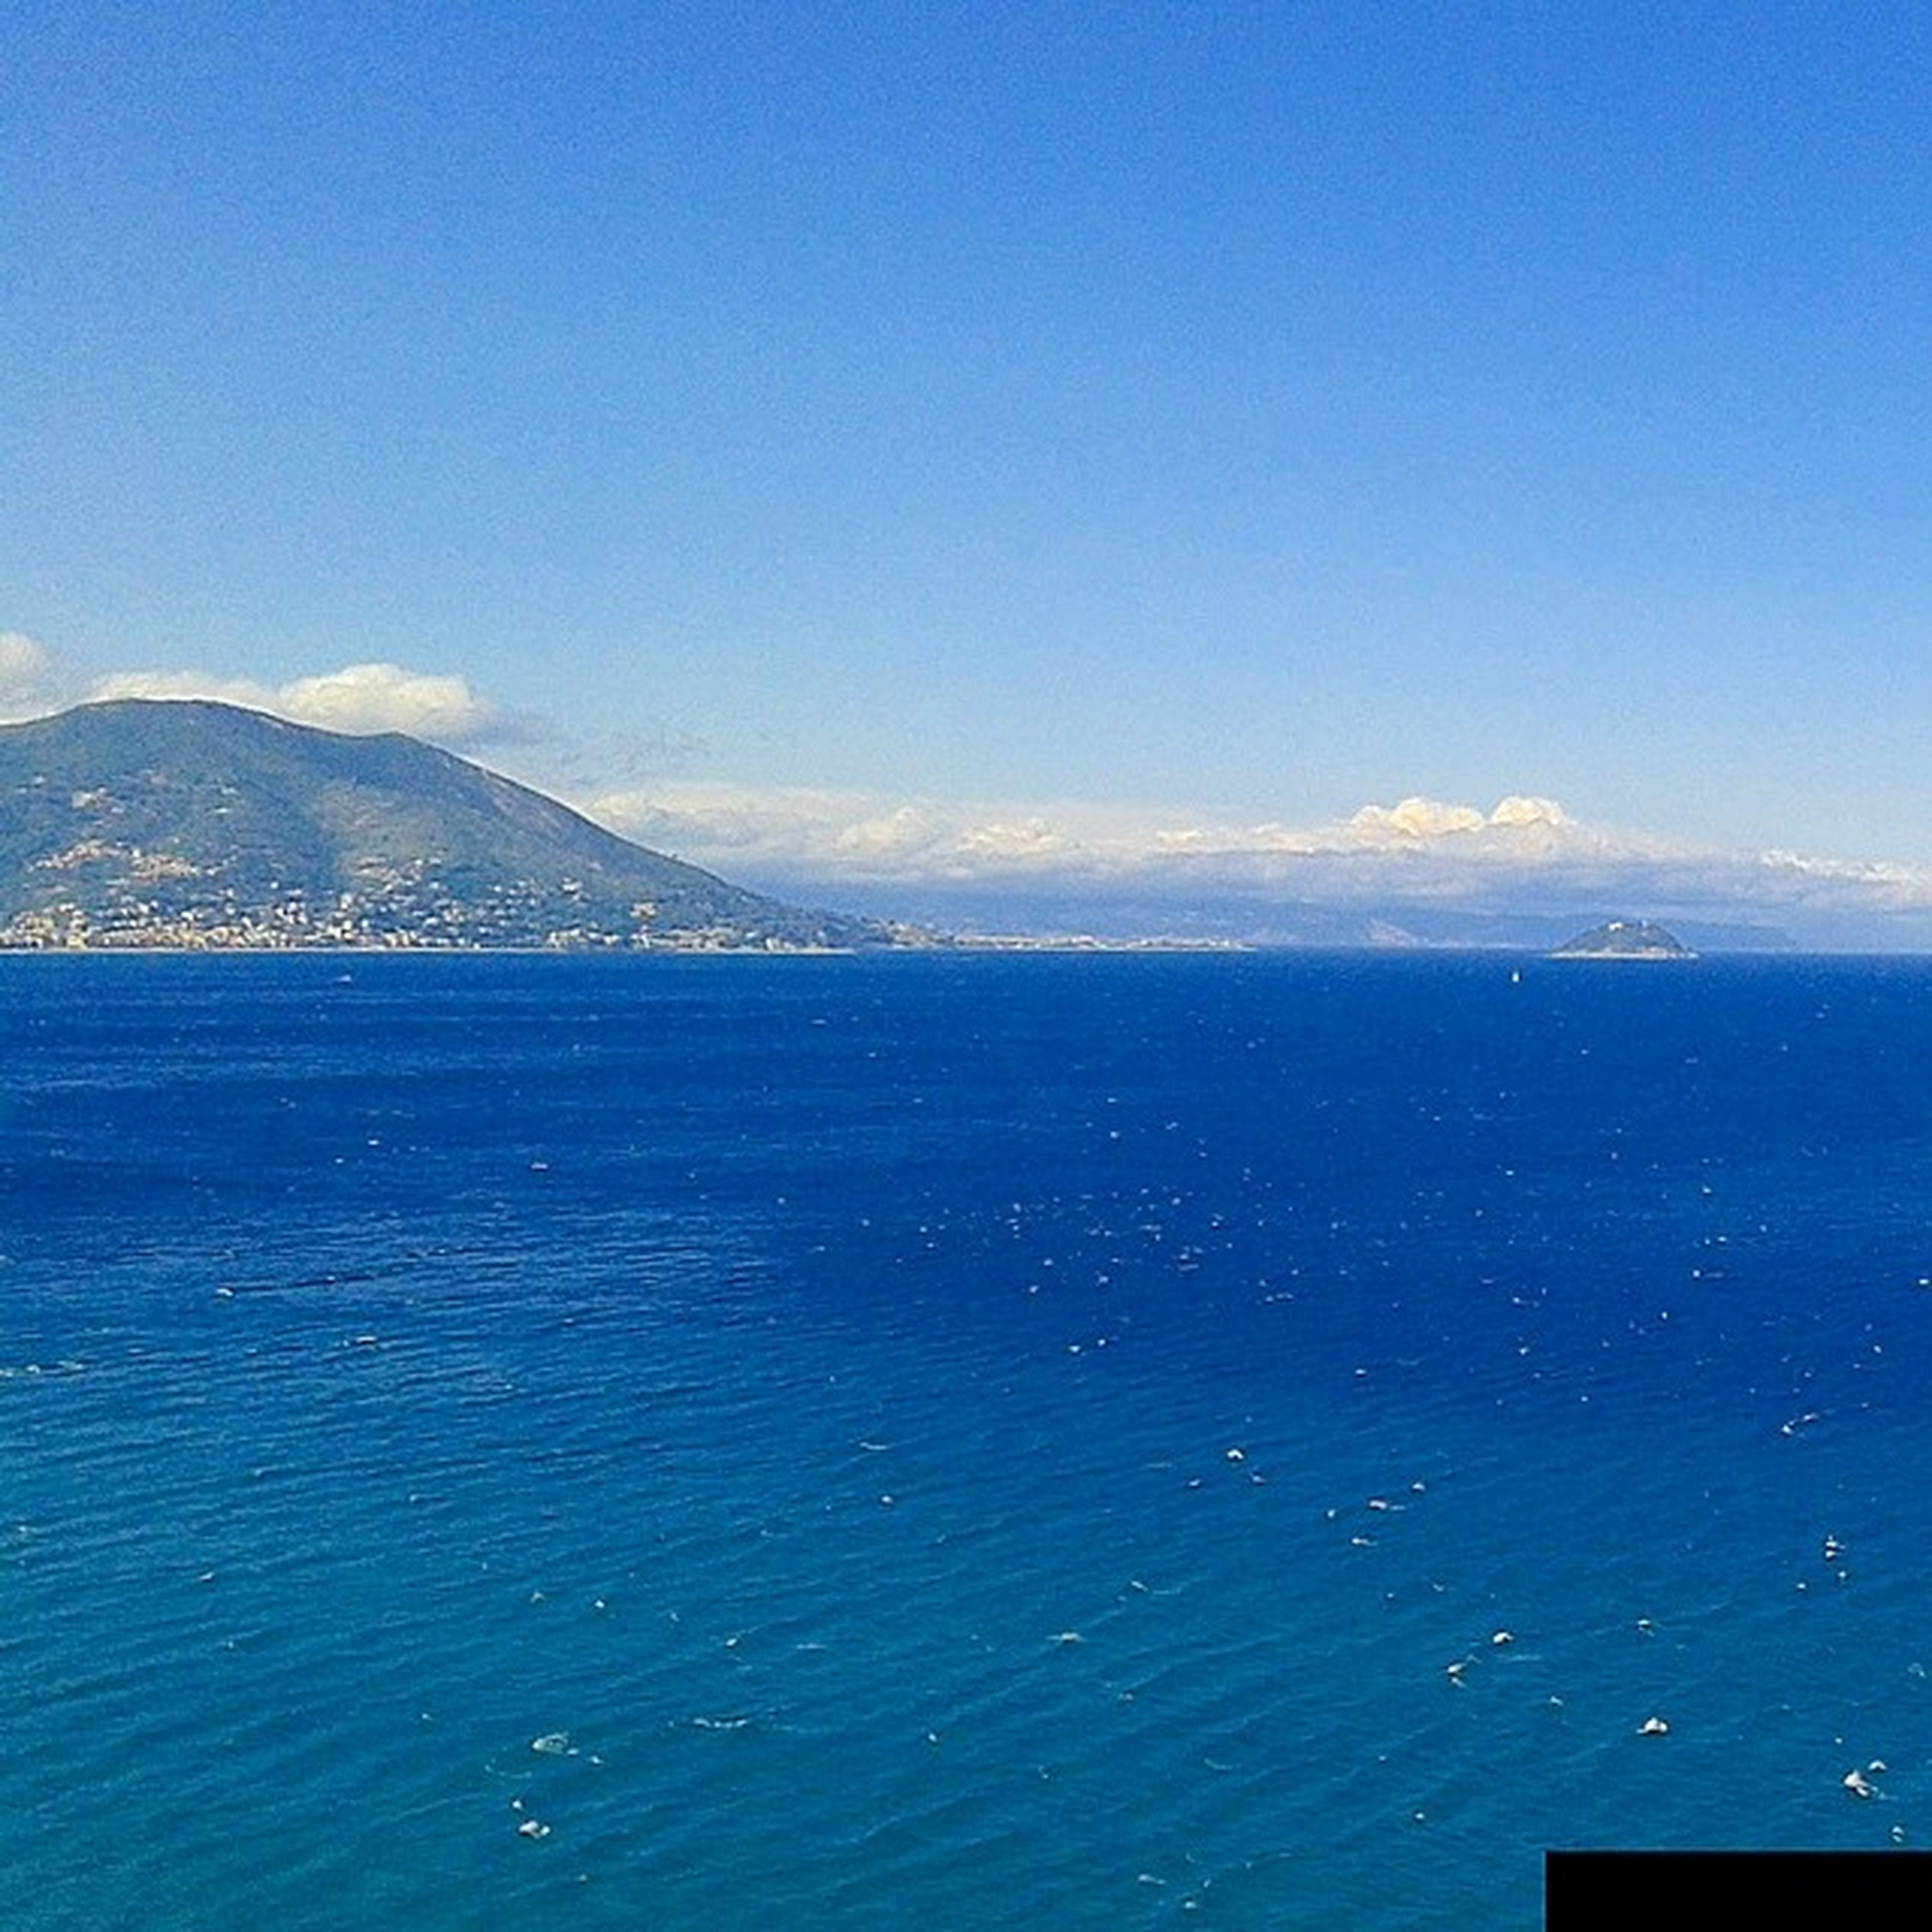 blue, water, sea, tranquil scene, scenics, tranquility, beauty in nature, mountain, nature, copy space, waterfront, idyllic, clear sky, sky, horizon over water, mountain range, calm, seascape, outdoors, remote